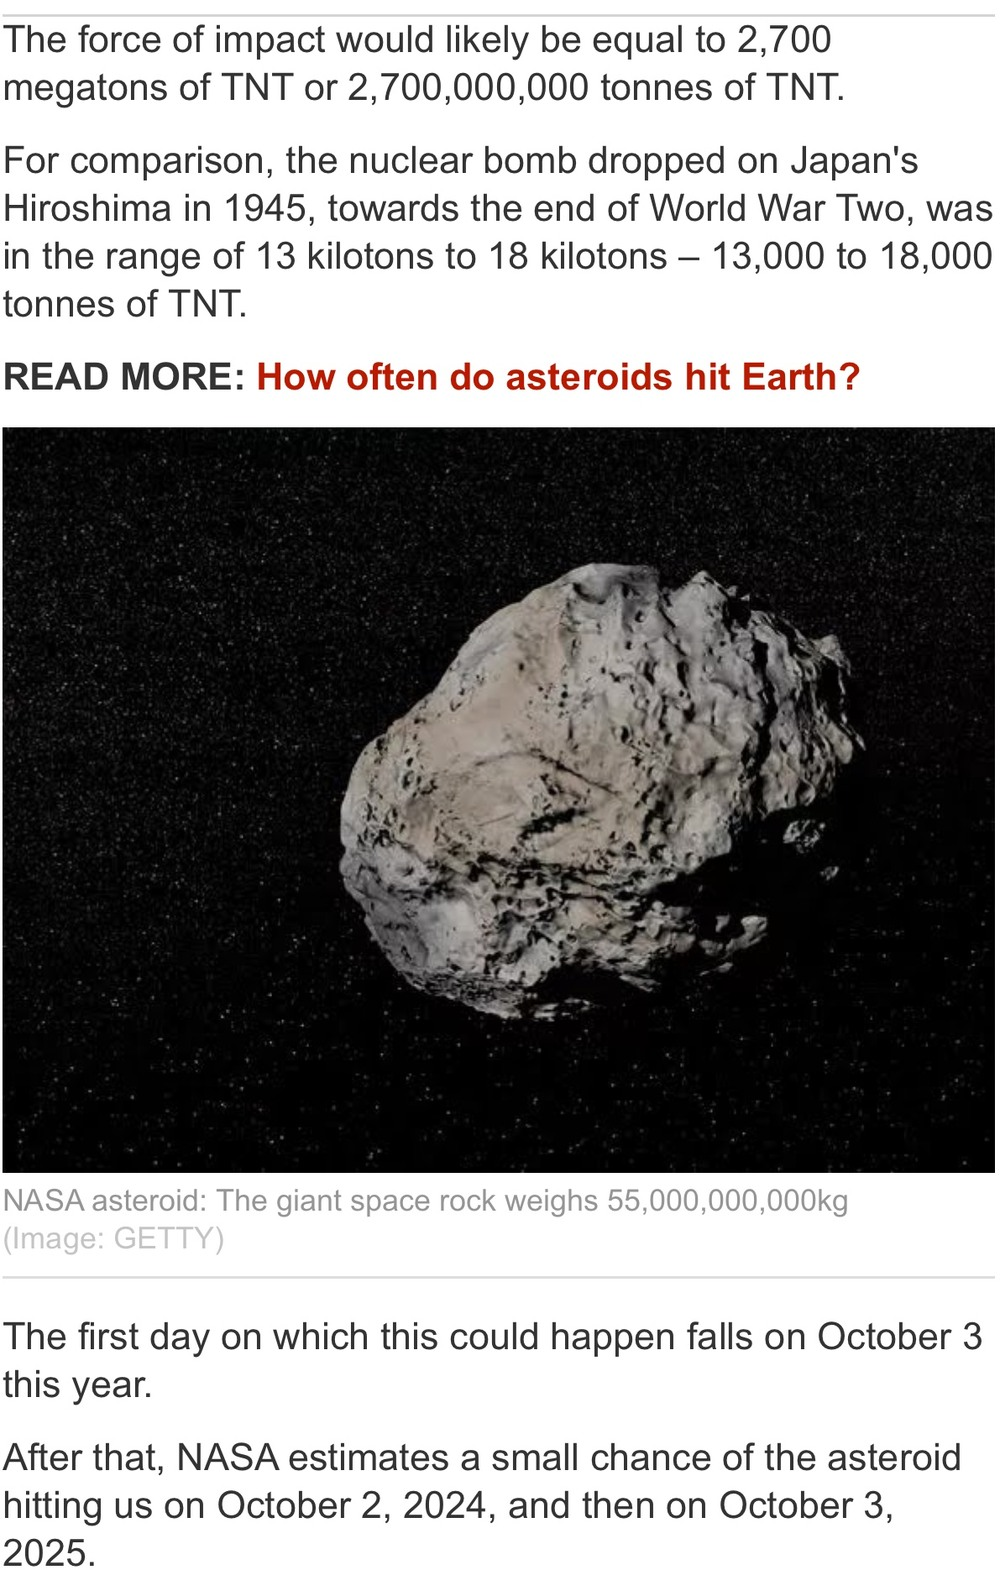 "I want to call this asteroid ""Thanos"". - meme"